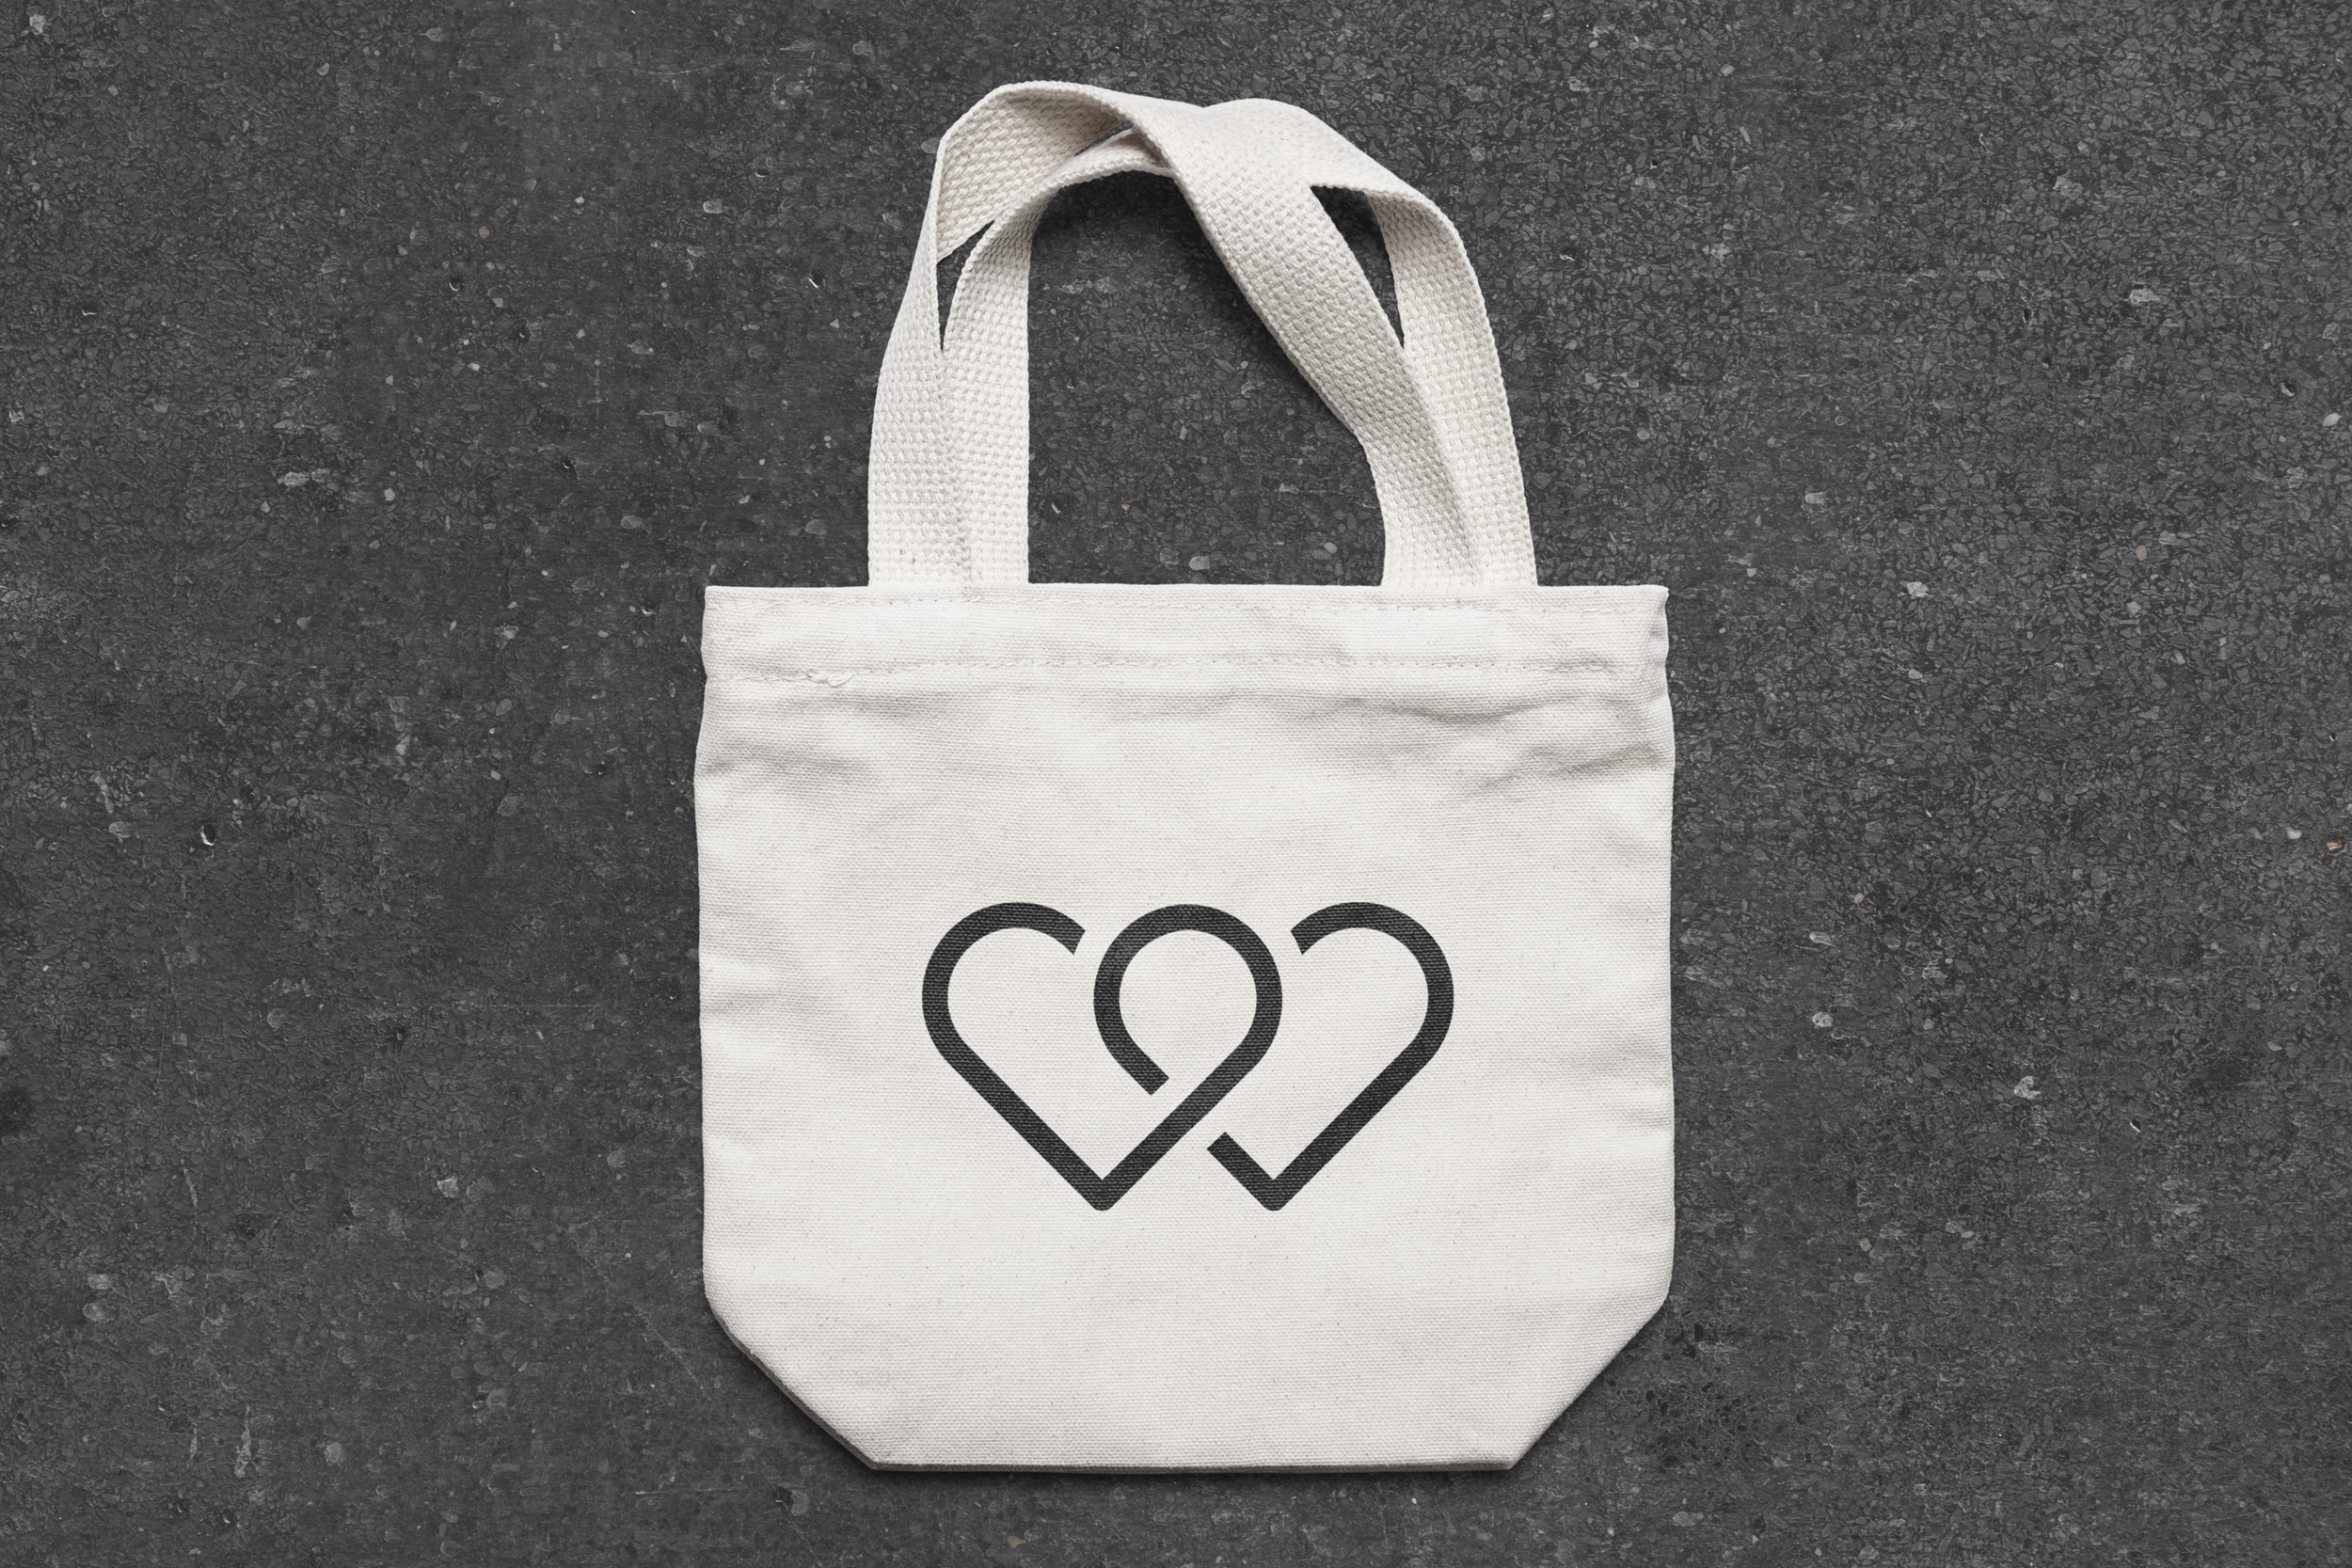 Logo displayed on a tote bag